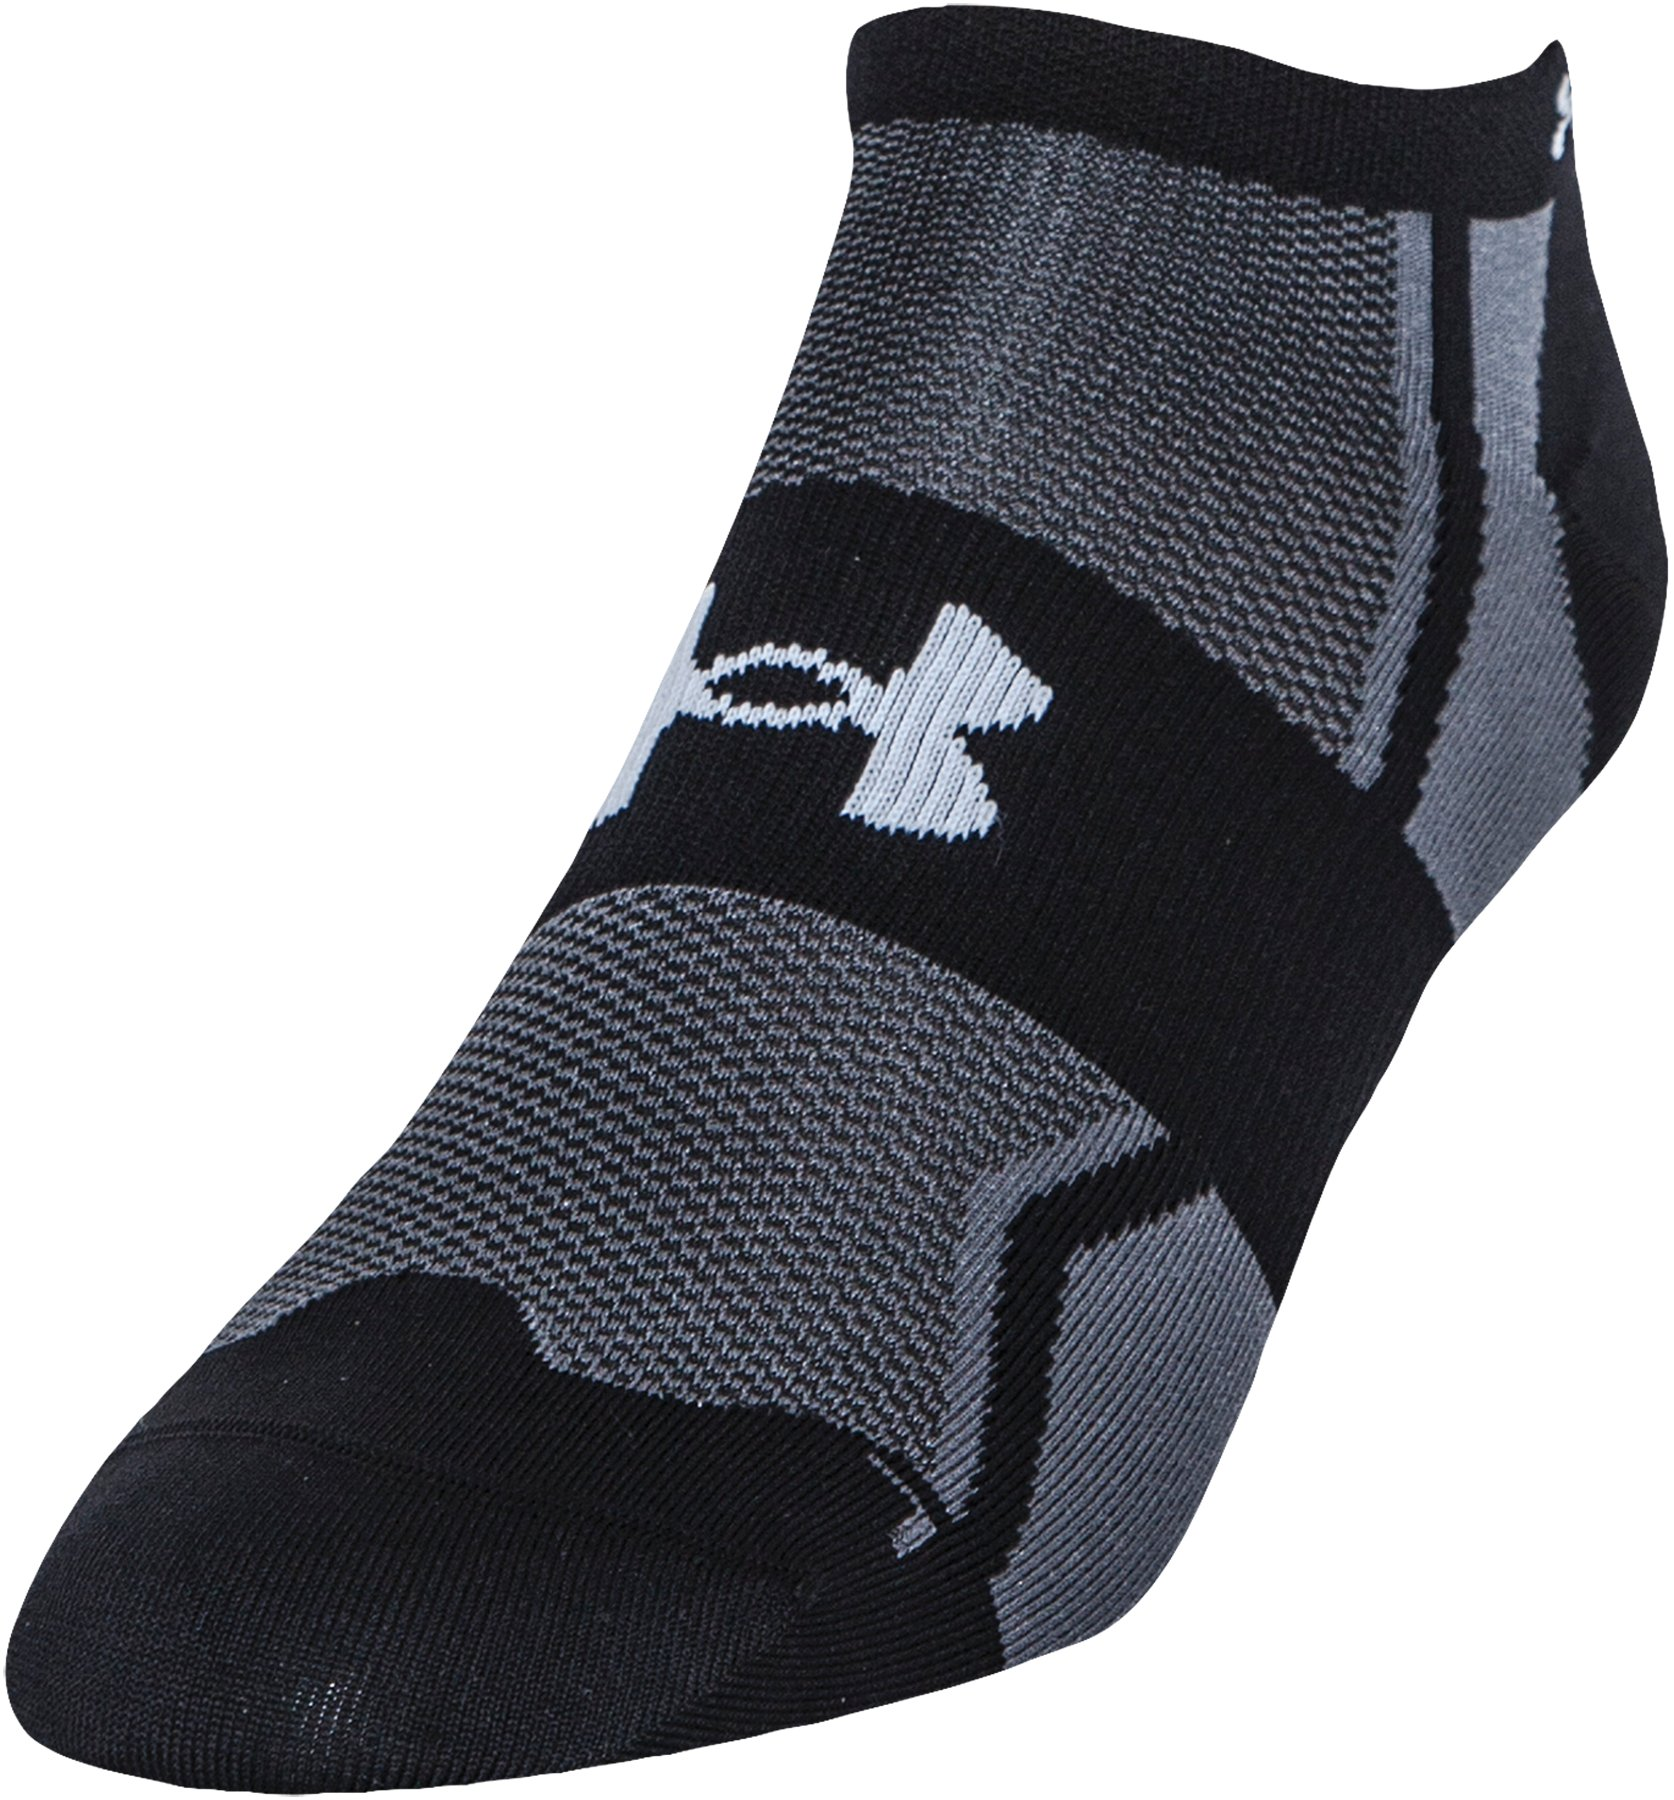 Men's UA SpeedForm® No-Show Socks - 3 for $30, Black